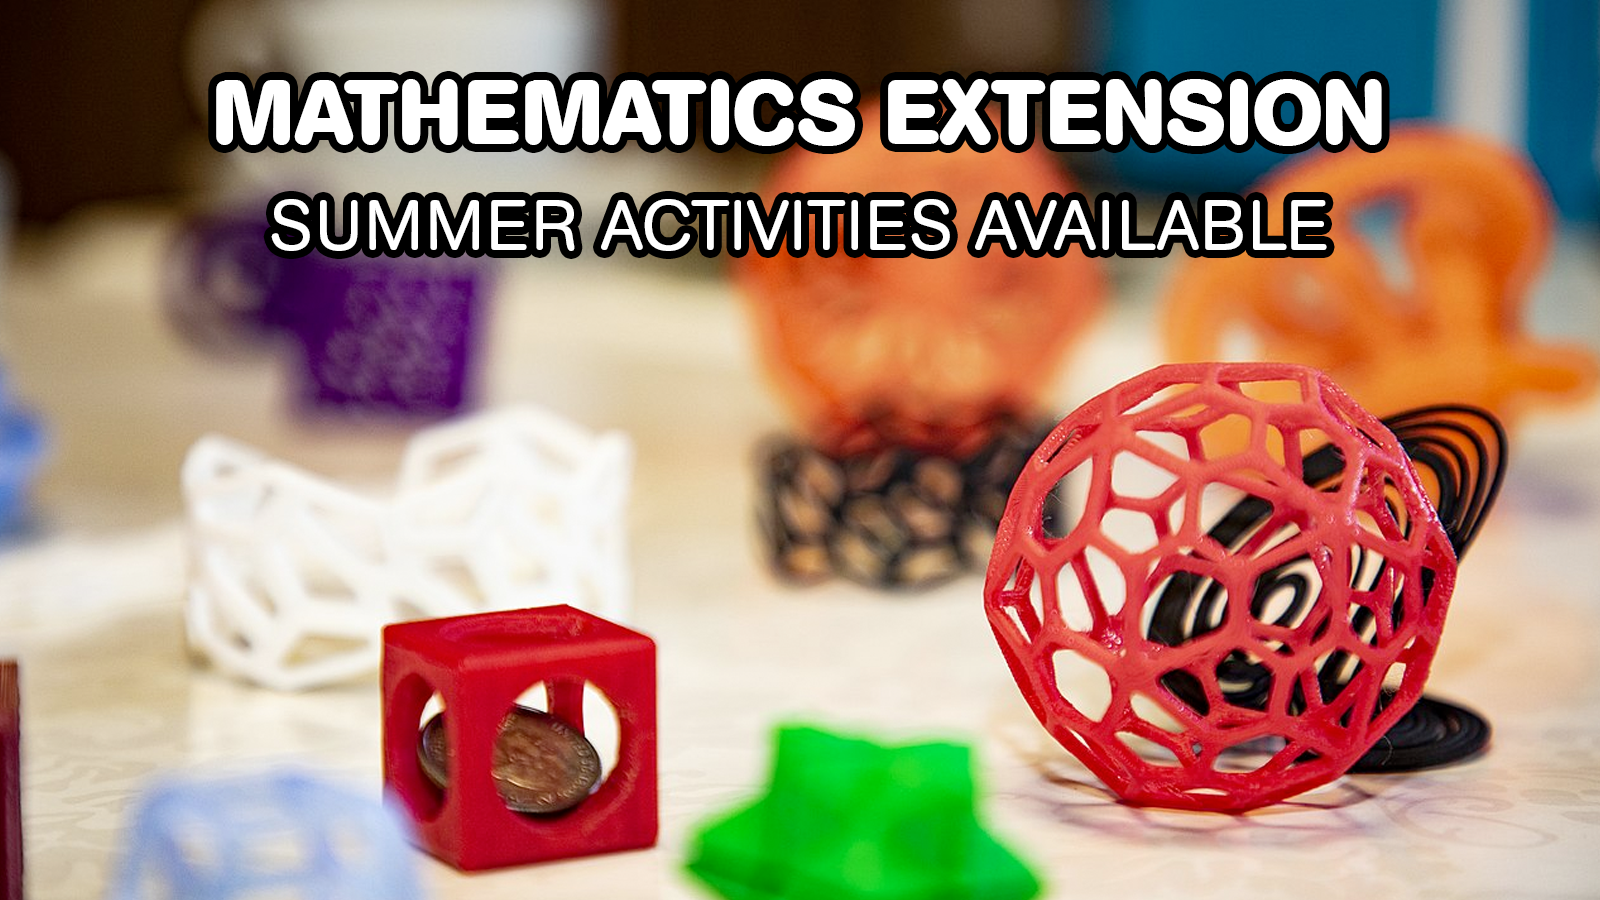 Summer Mathematics